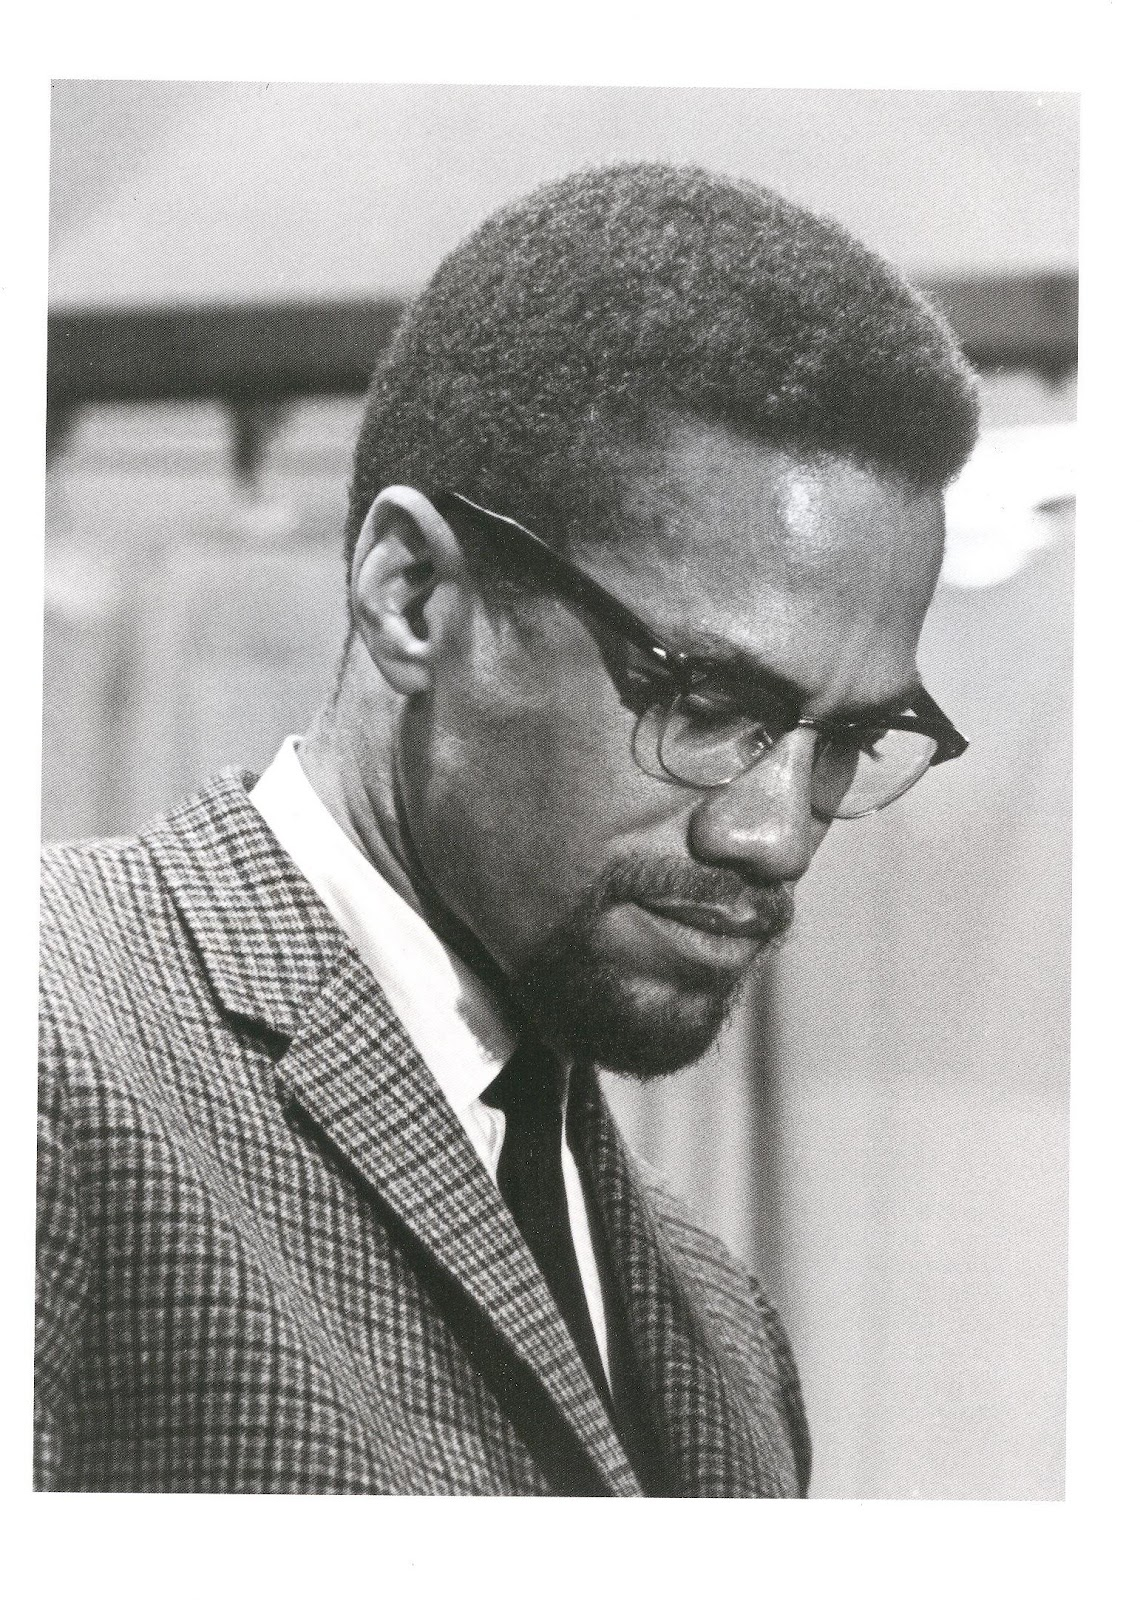 malcolm x 7 Malcolm x event looks to link memories of the civil rights icon with the human rights struggles of today.